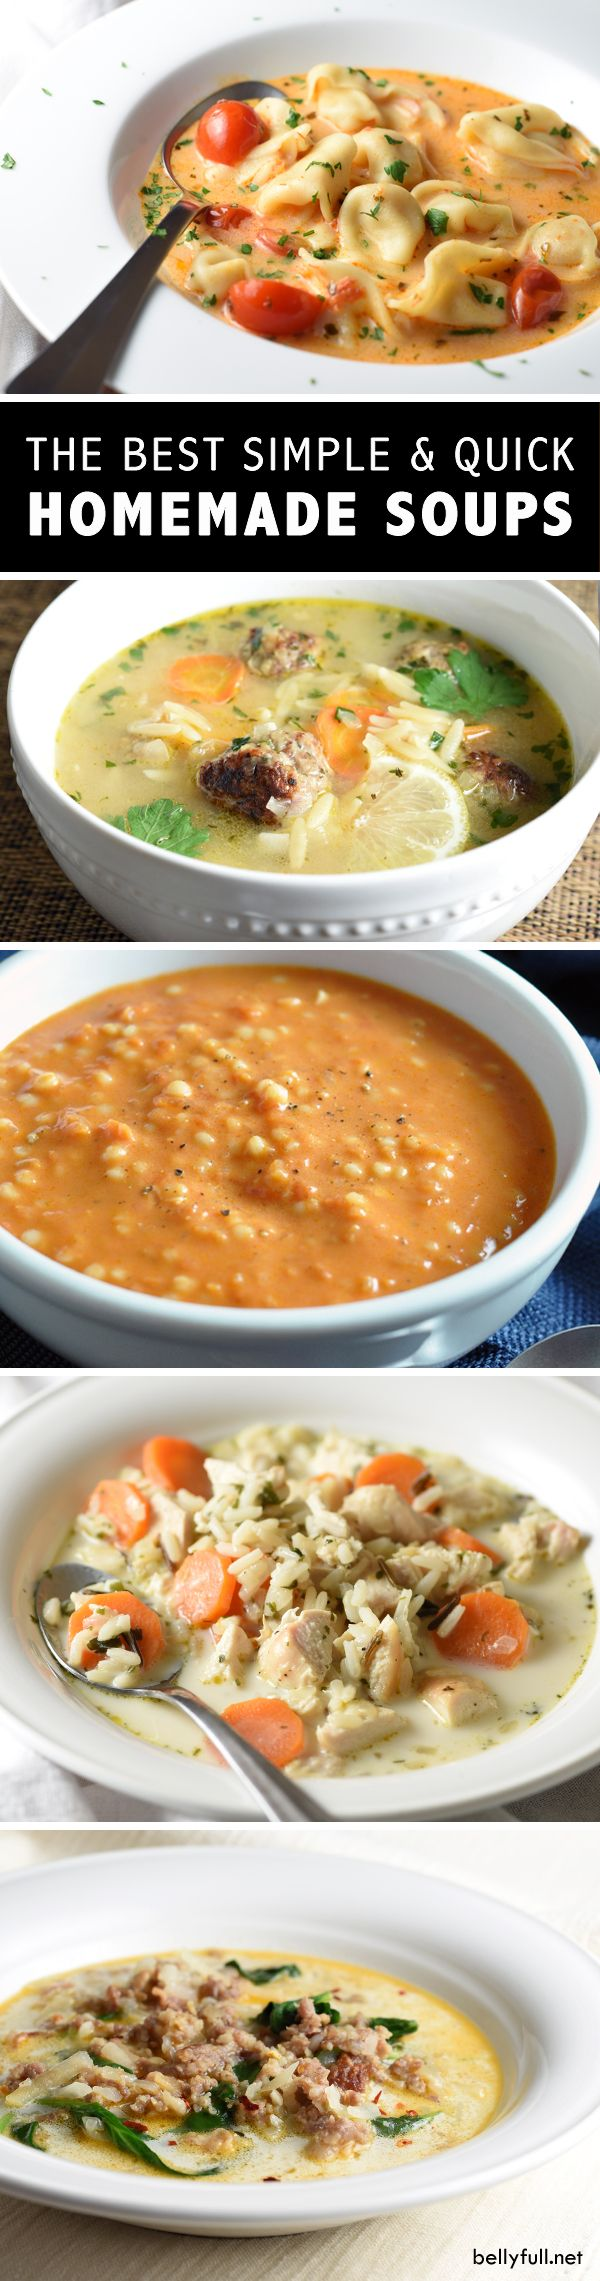 733 best i soups images on pinterest soup recipes soups and chili easy and quick homemade soups sisterspd